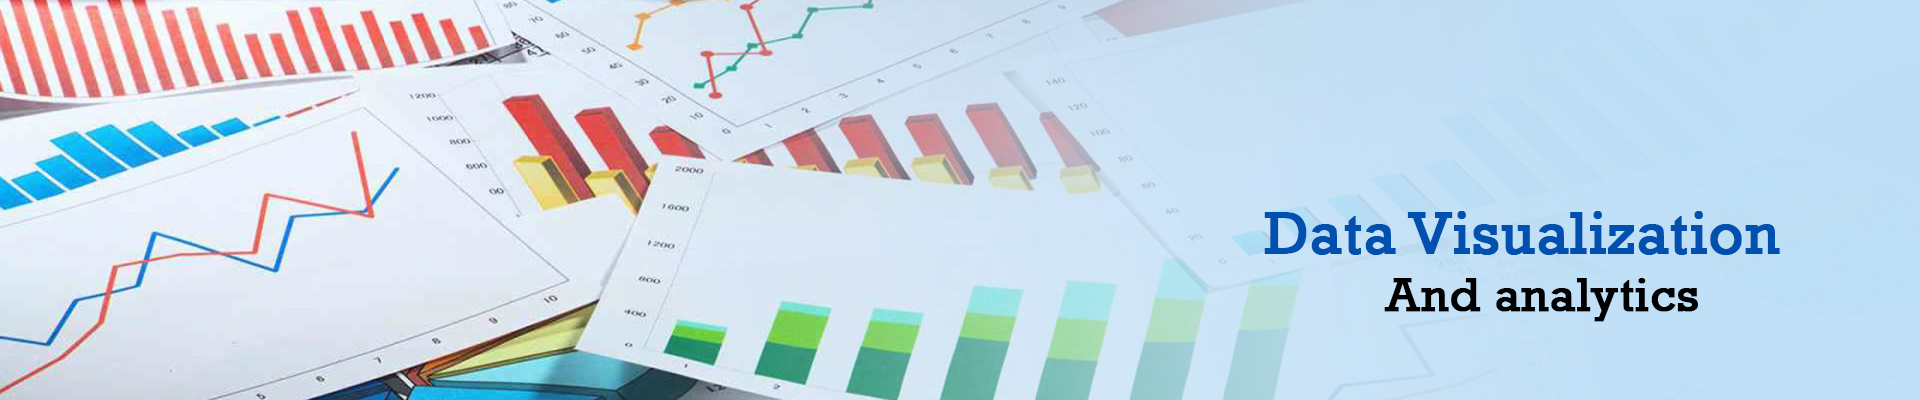 Data Visualization Analytics training